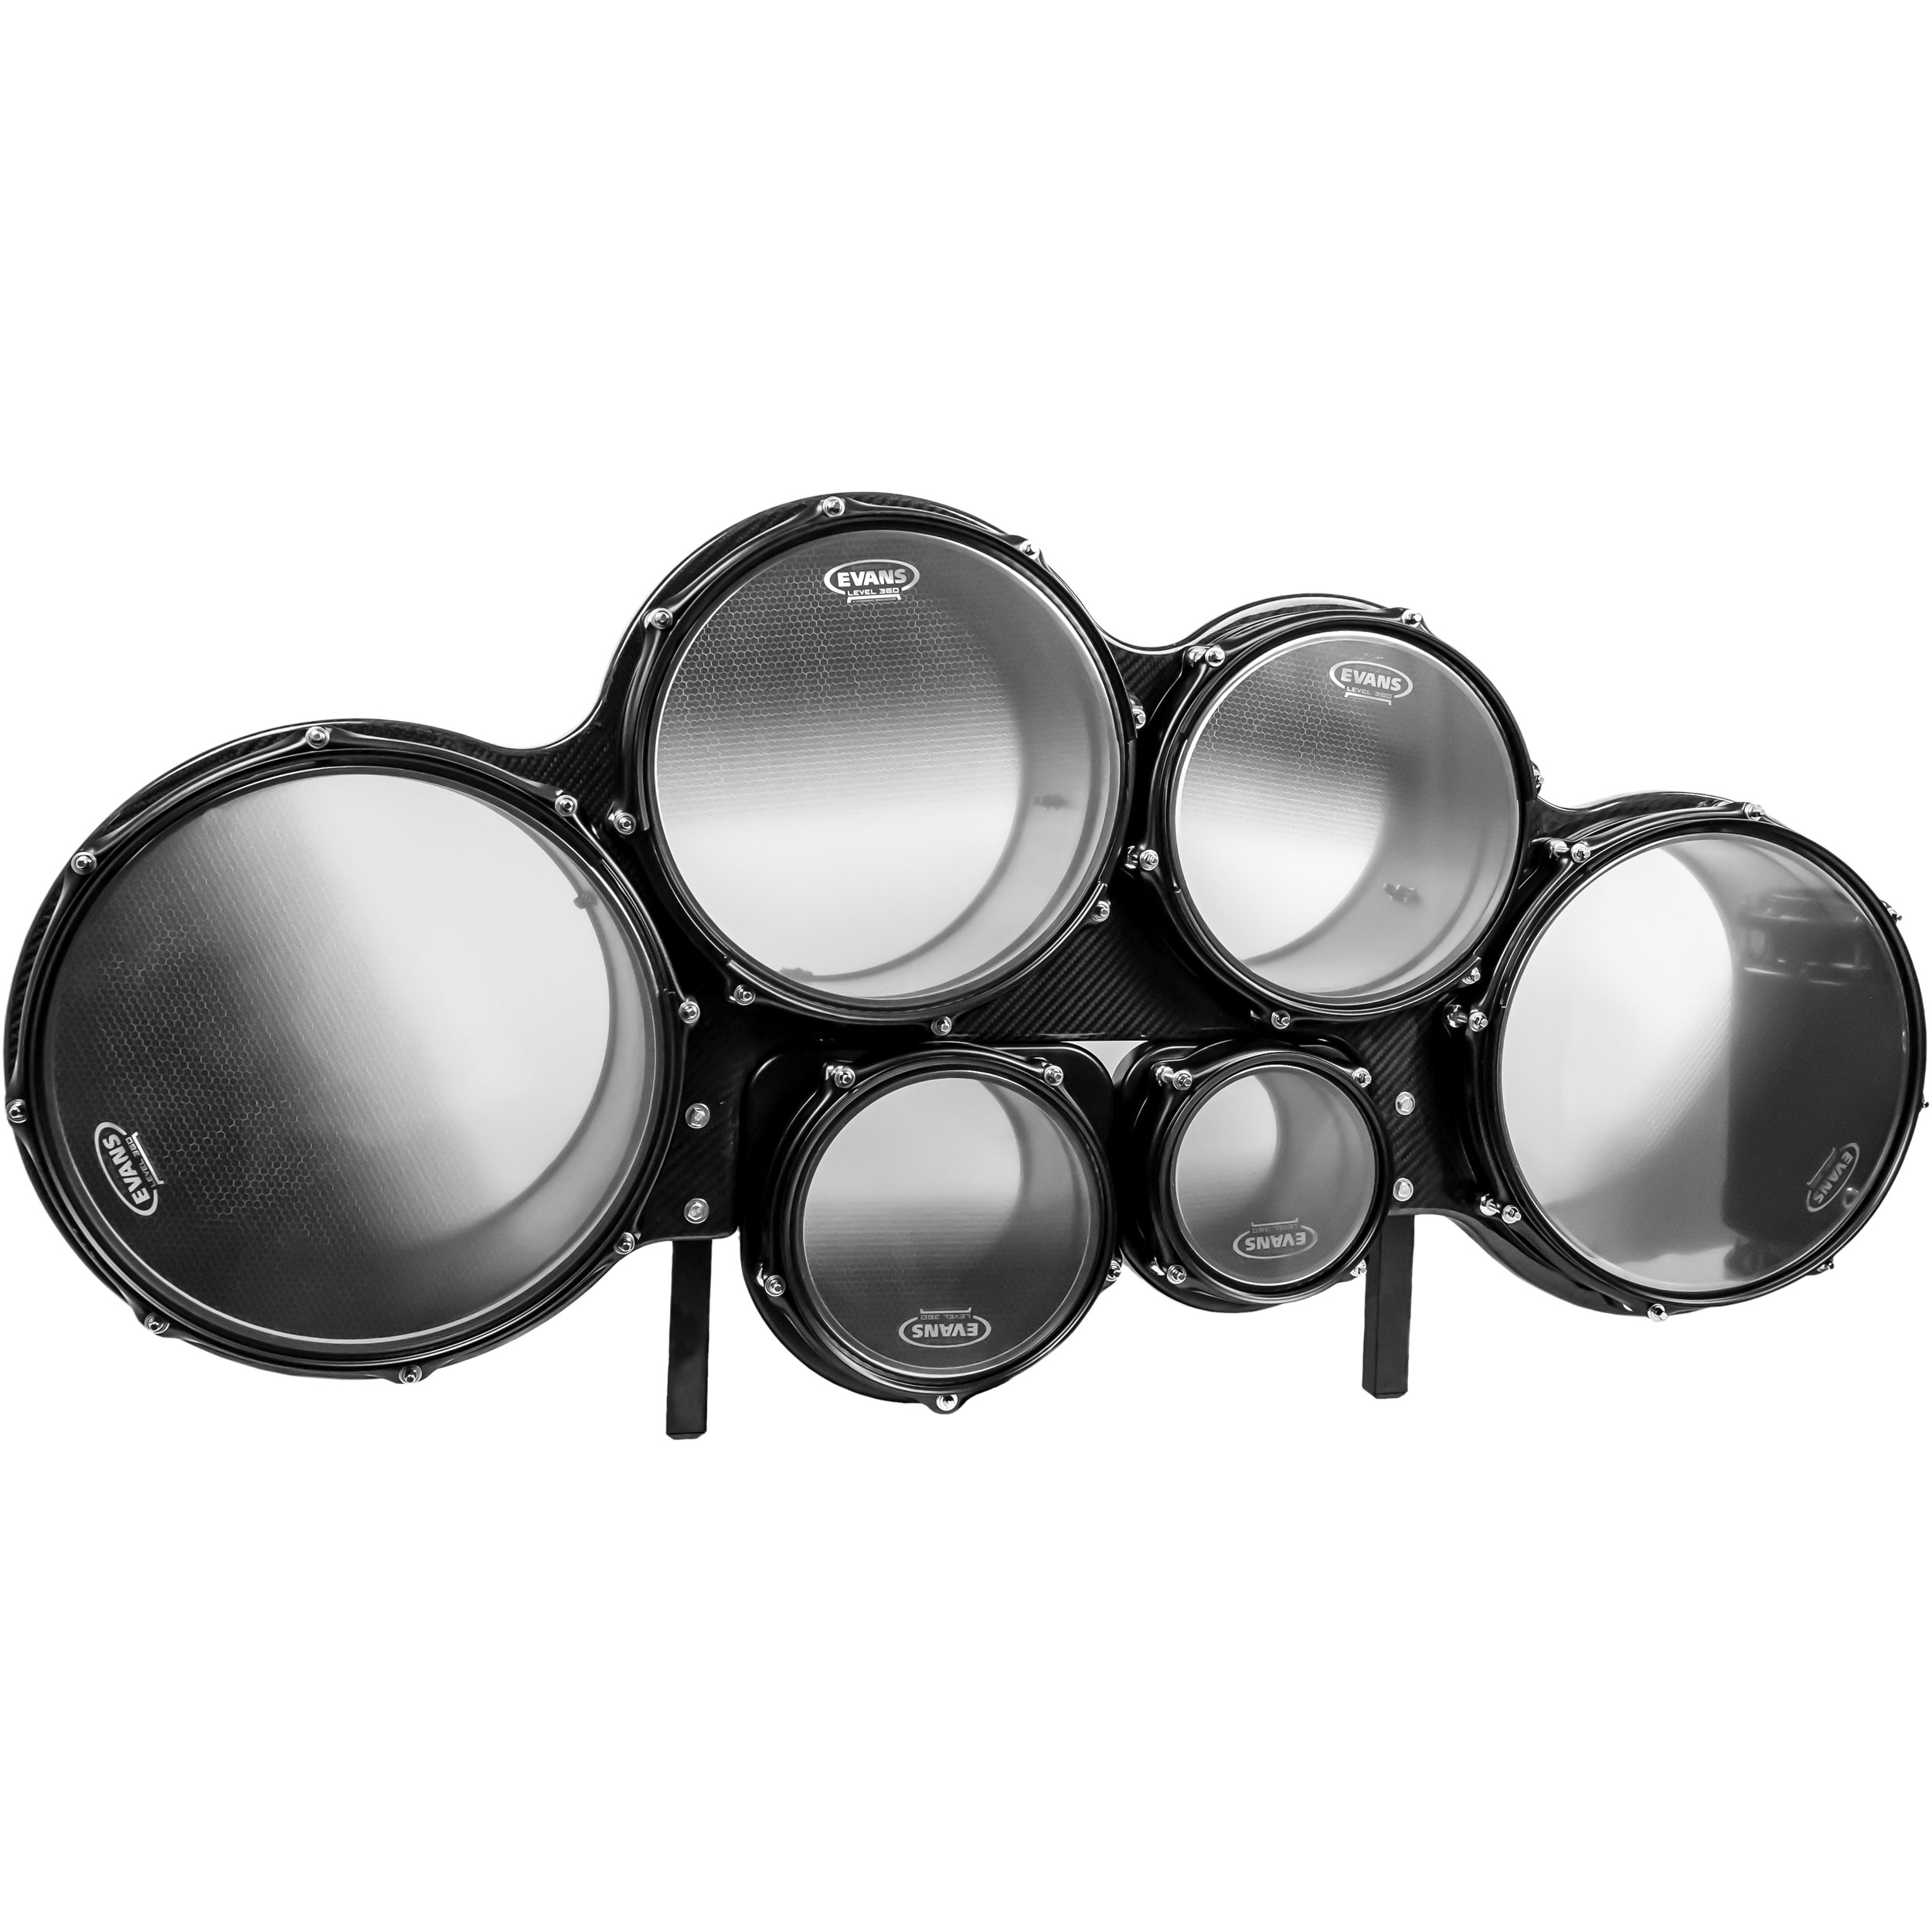 """System Blue 6-8-10-12-13-14"""" Professional Series Marching Tenors"""